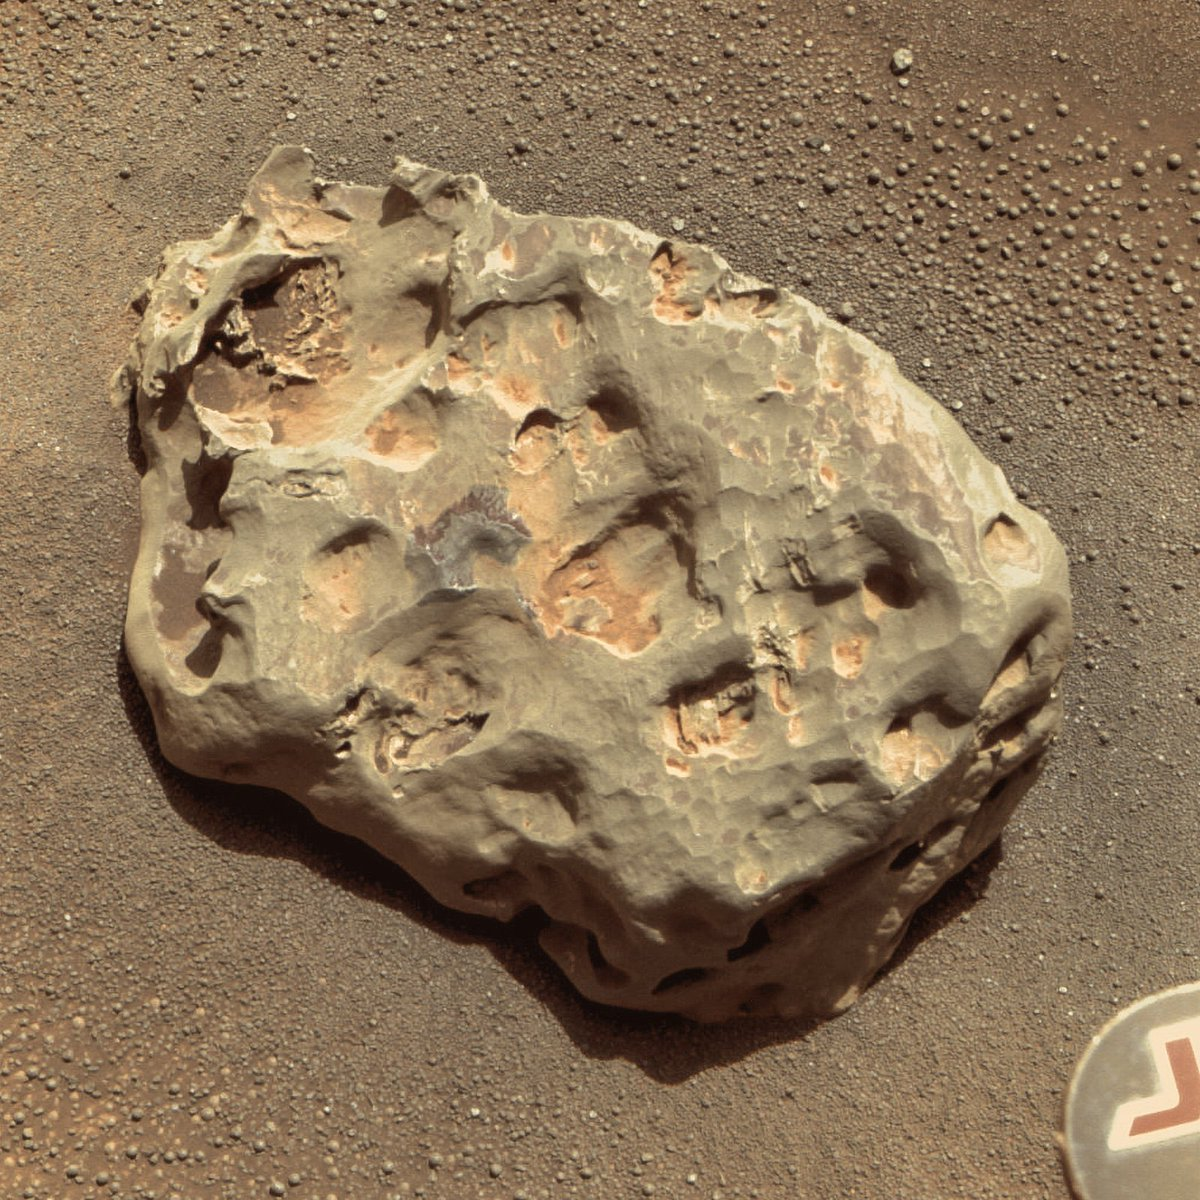 Heat Shield Rock is about 30 cm (1 foot) long and has a mass of about 50 kg (110 lbs). Made of nickel and iron, it's the first meteorite to be discovered on another planet in our Solar System. Opportunity captured this close-up on January 20, 2005.